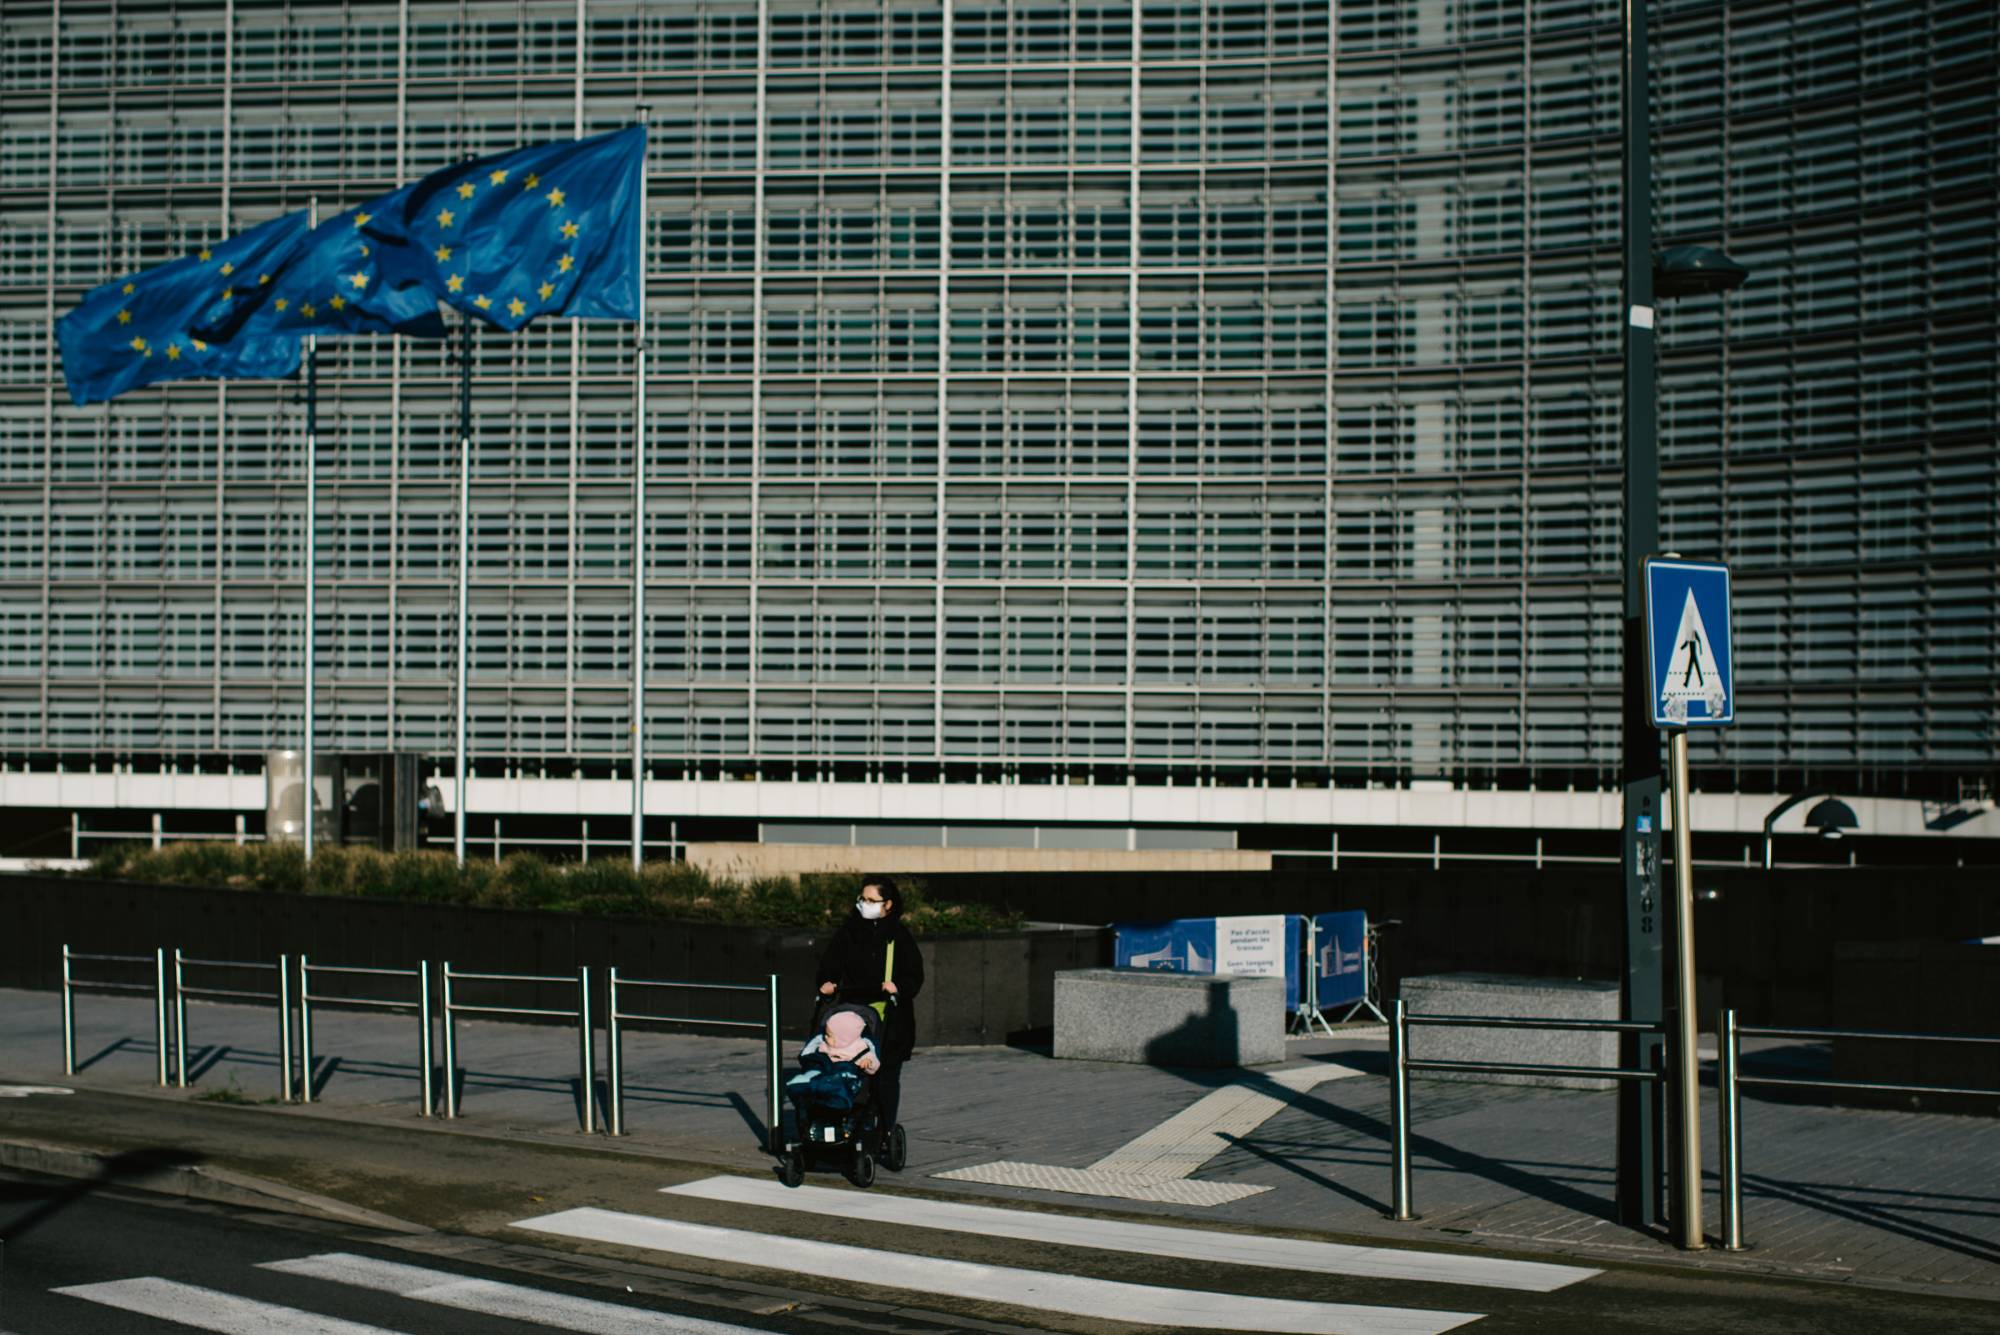 The European Commission in Brussels in October. As the European Union has become the global leader in tech regulation, Silicon Valley companies have increasingly focused on Brussels in hopes of choking off even stiffer rules before they spread. | DMITRY KOSTYUKOV / THE NEW YORK TIMES